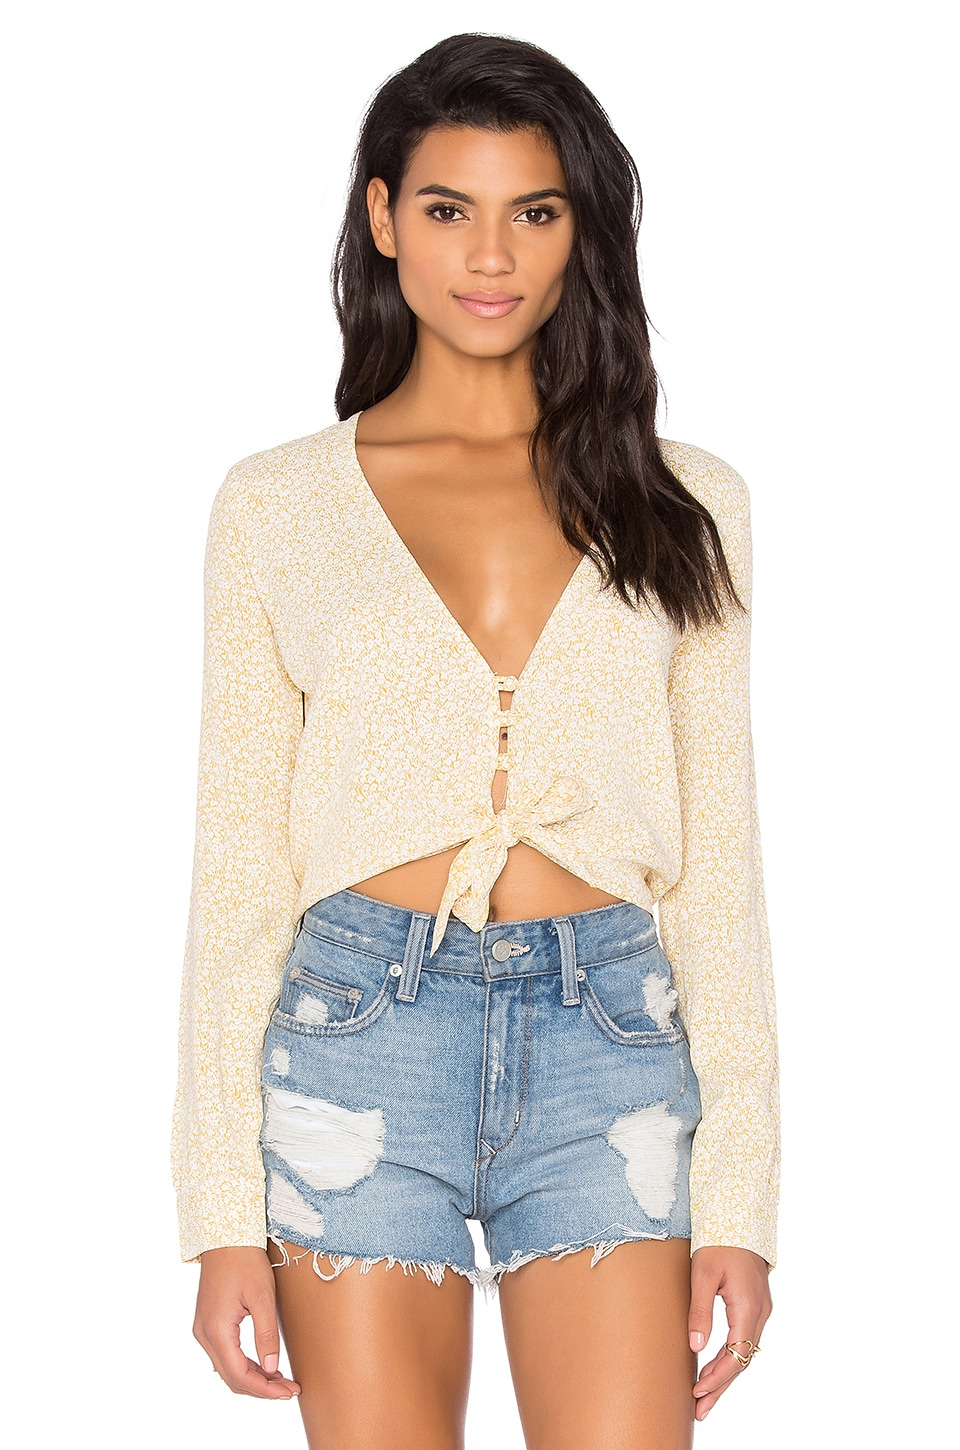 FLYNN SKYE Riley Crop Top in Sunny Delight